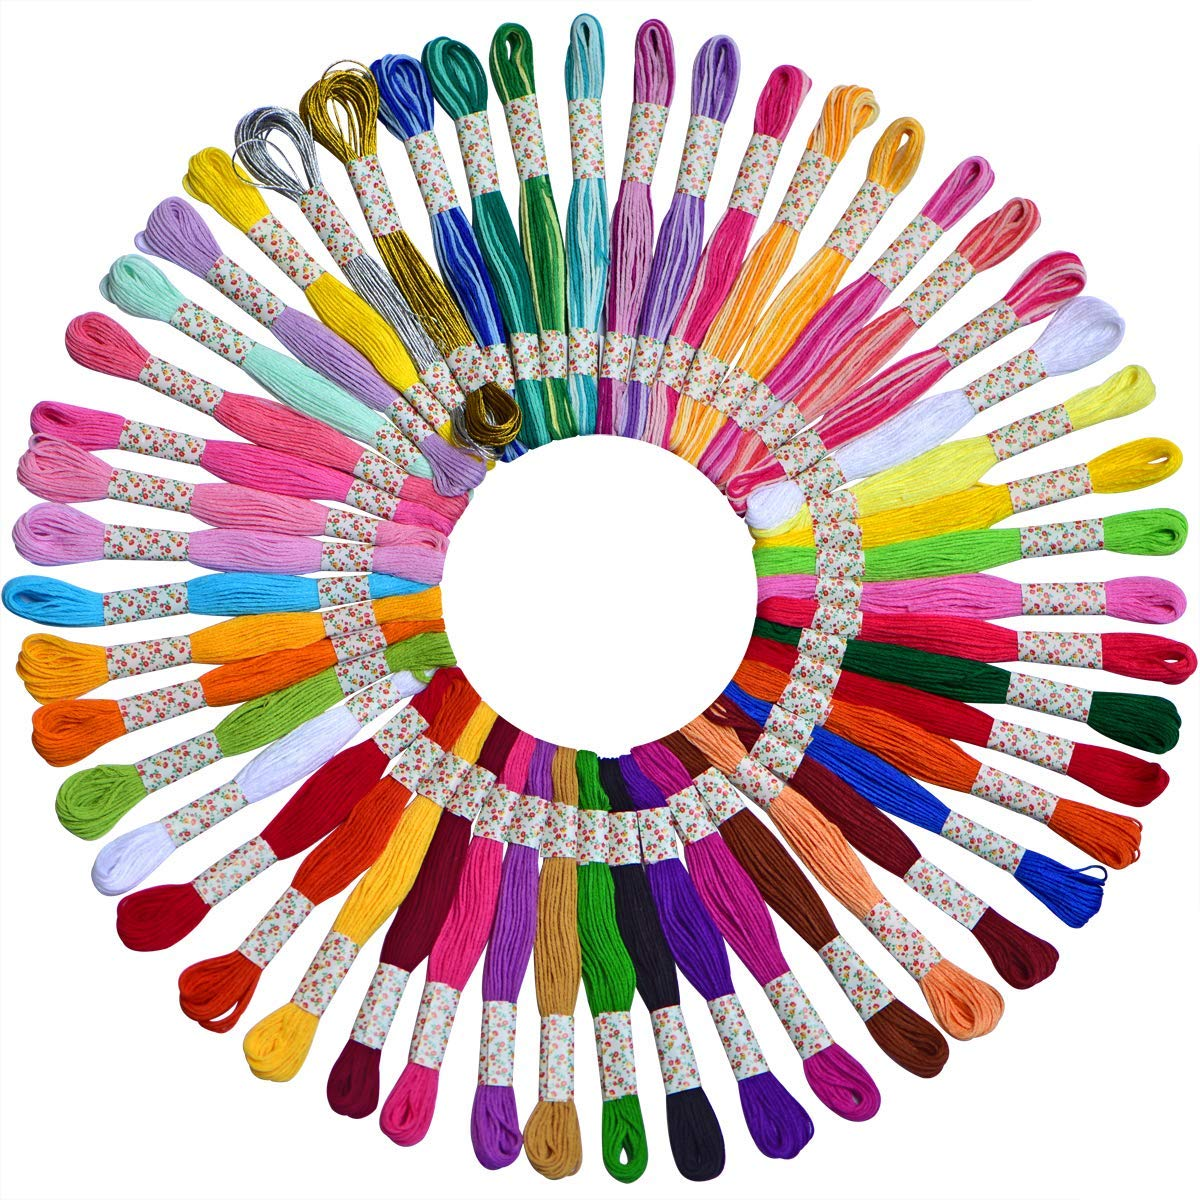 Electop Embroidery Floss 100 Skeins with 34 Pieces Cross Stitch Tool Kit Rainbow Color Cross Stitch Threads Friendship Bracelets Floss String Crafts Floss